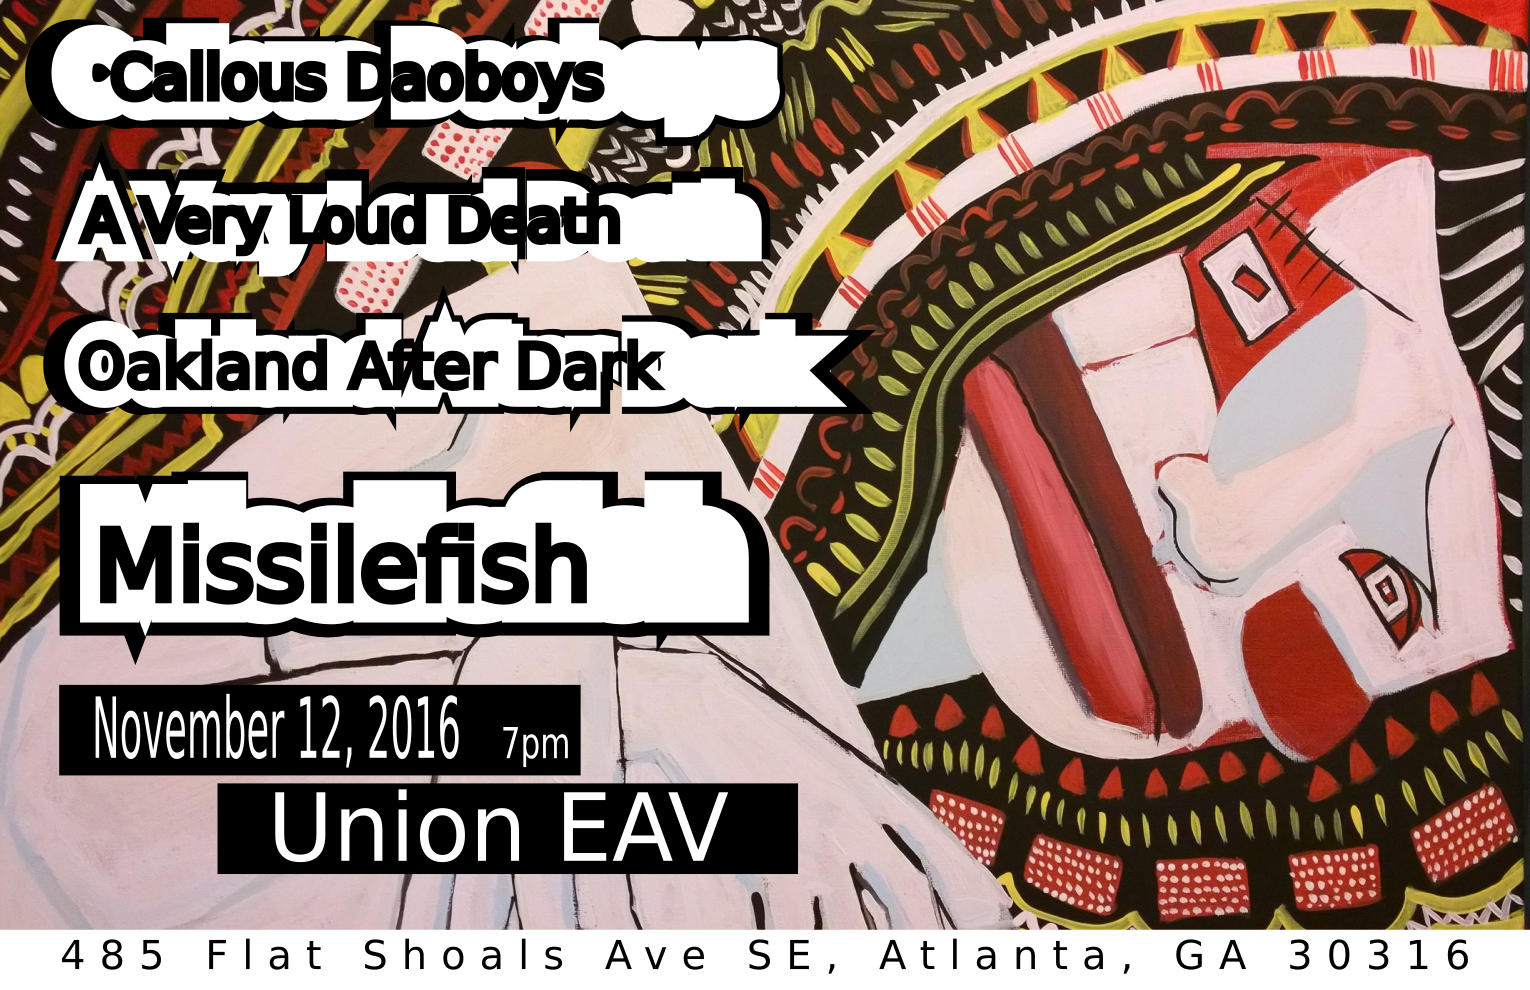 The Union EAV Flyer